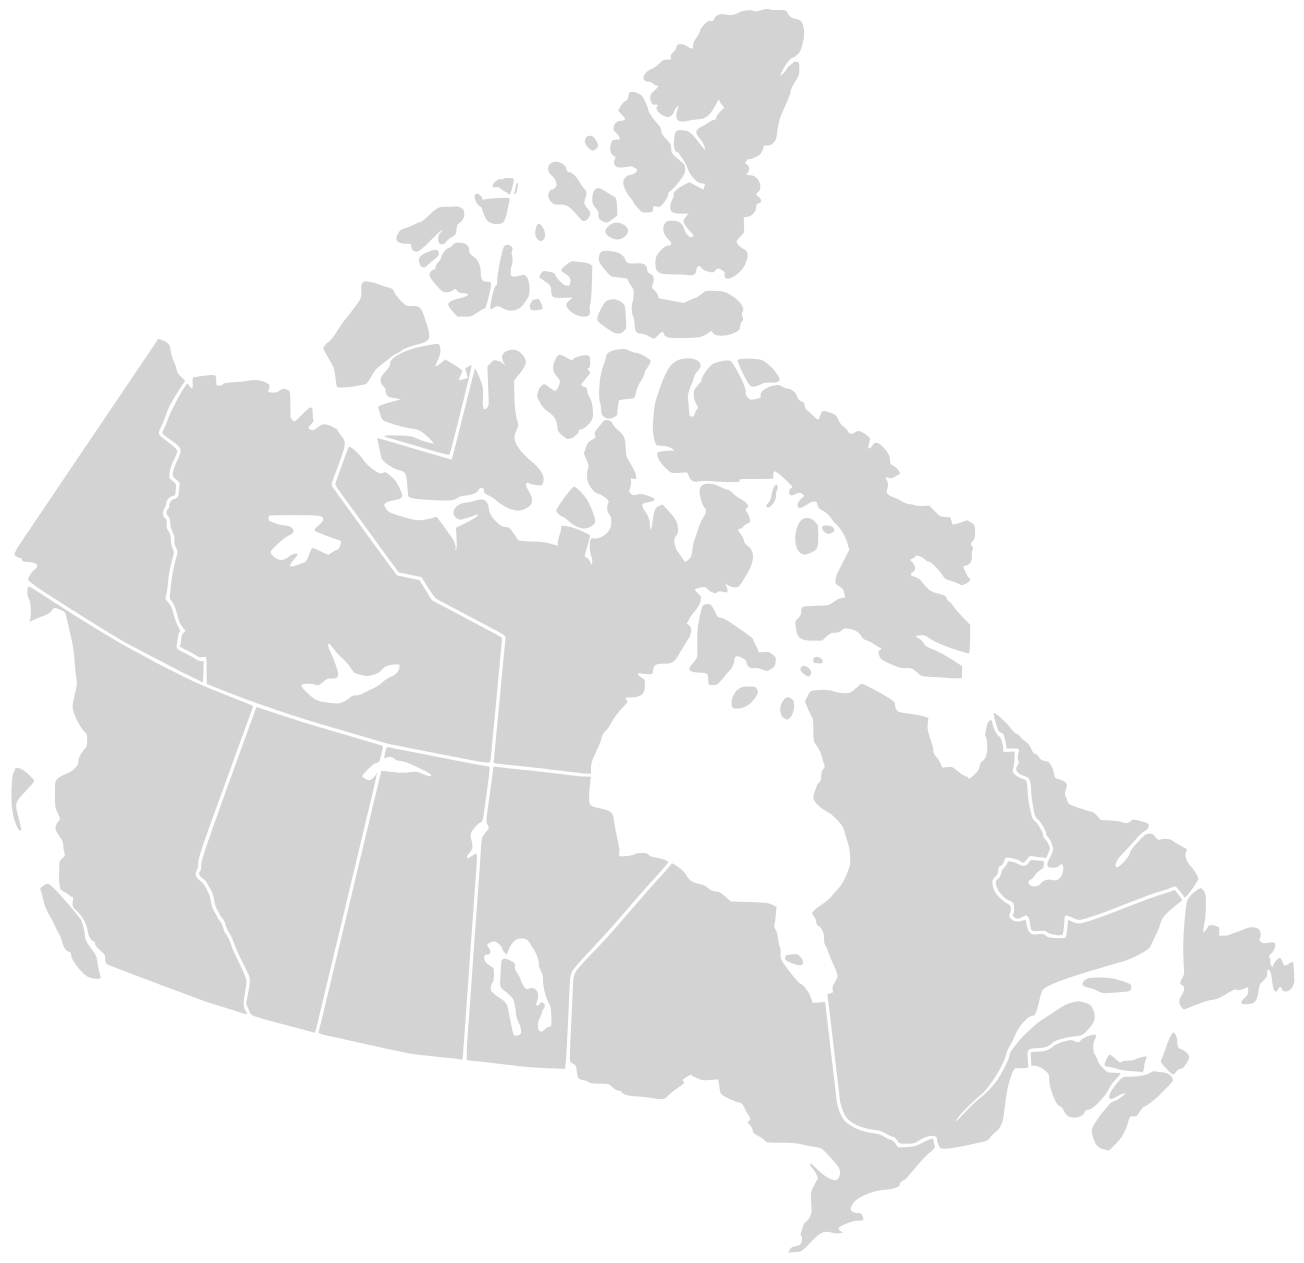 File:Canada blank map.svg.